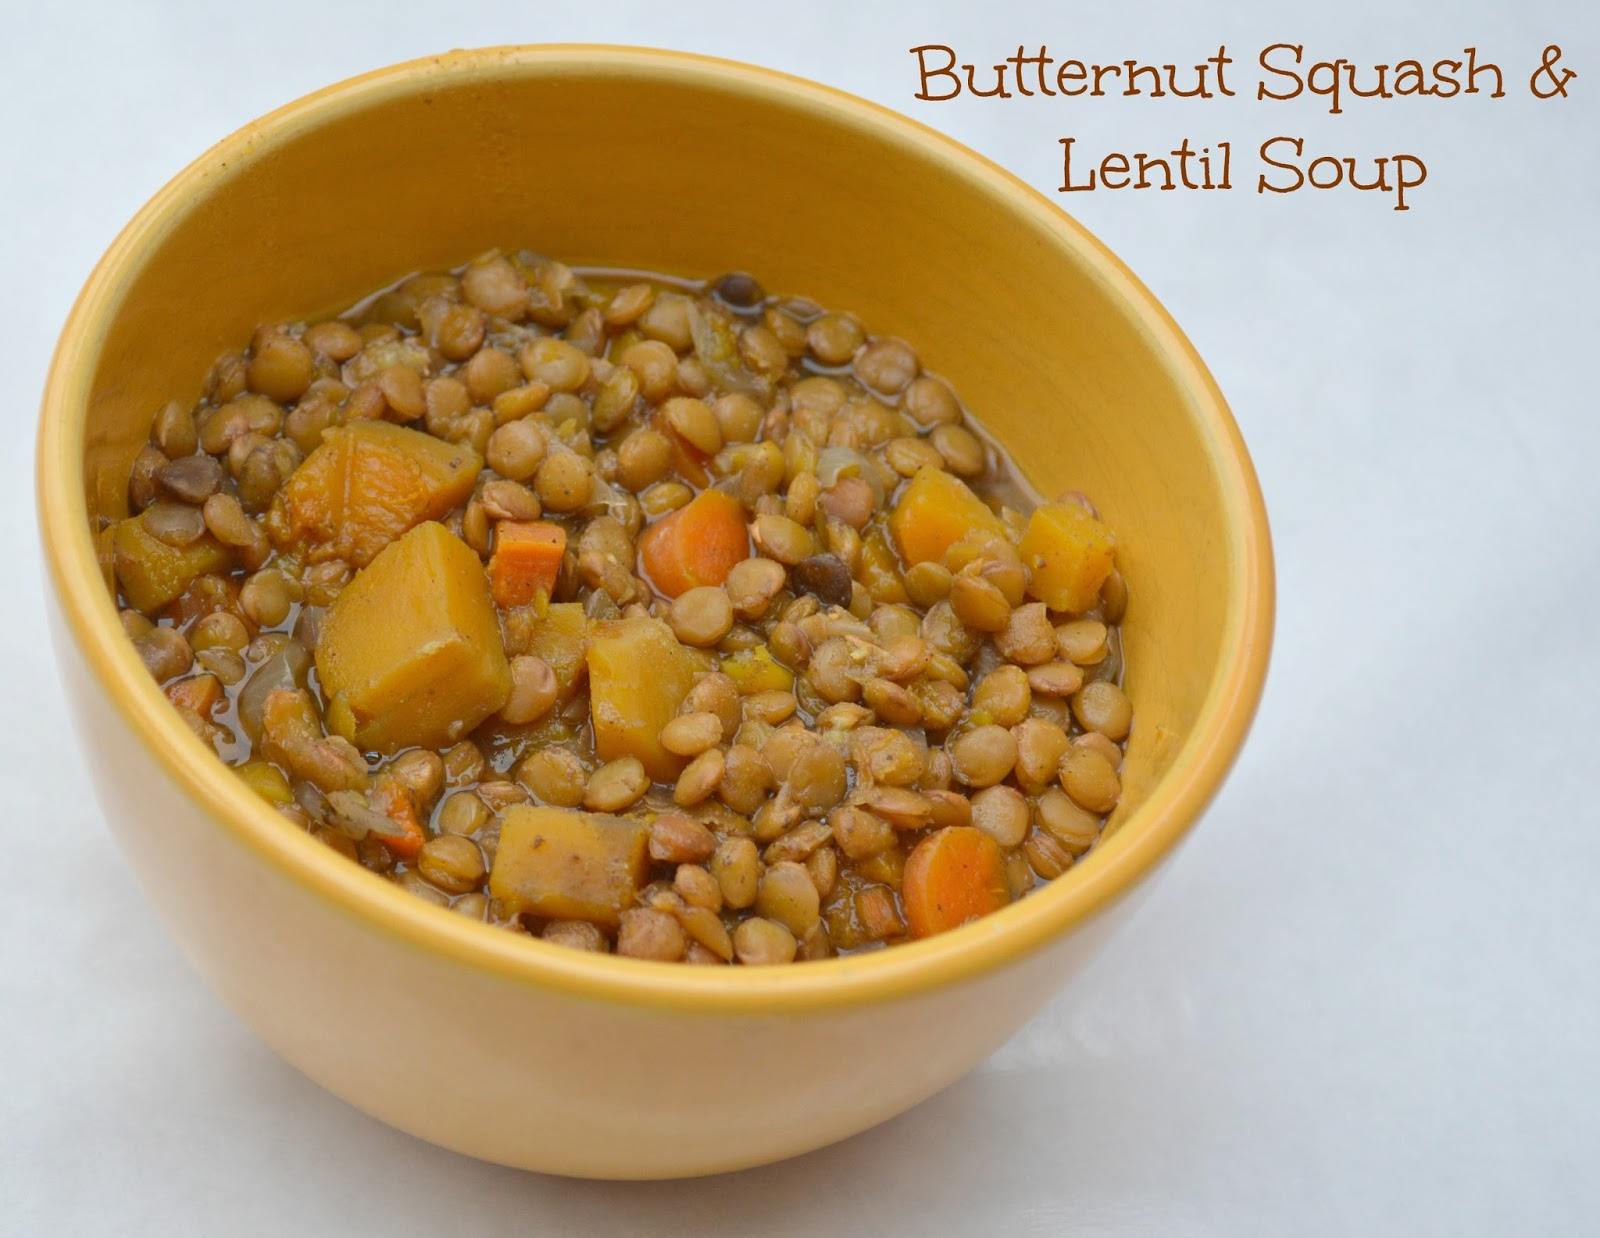 Butternut Squash and Lentil Soup - the Perfect Soup for Fall